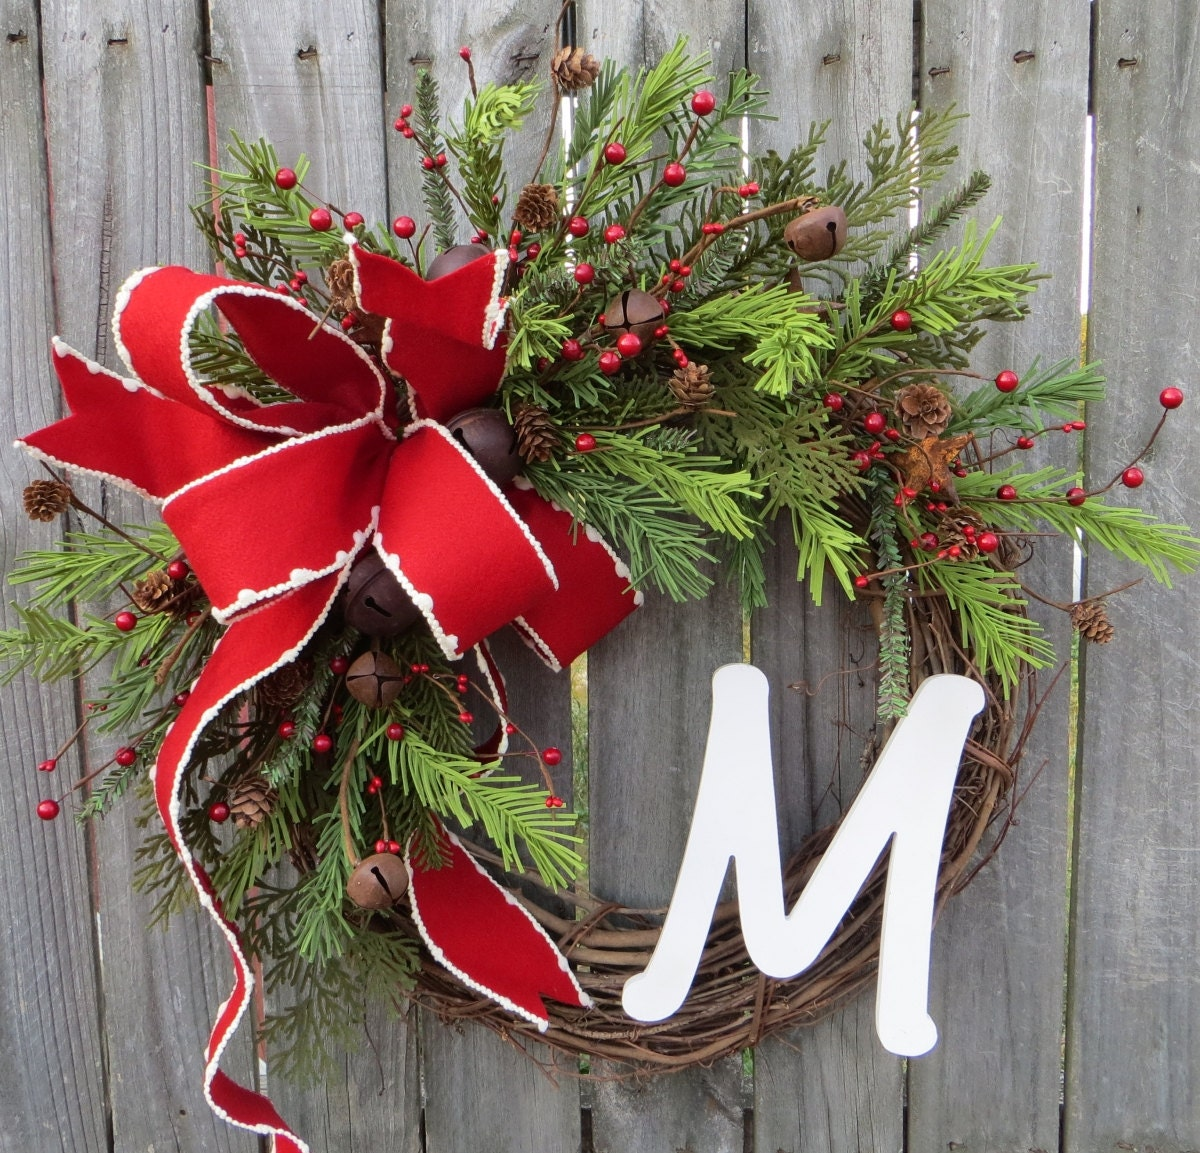 christmas holiday wreath monogram christmas wreath christmas wreaths rustic bell christmas wreaths christmas wreaths etsy - Christmas Wreaths Etsy